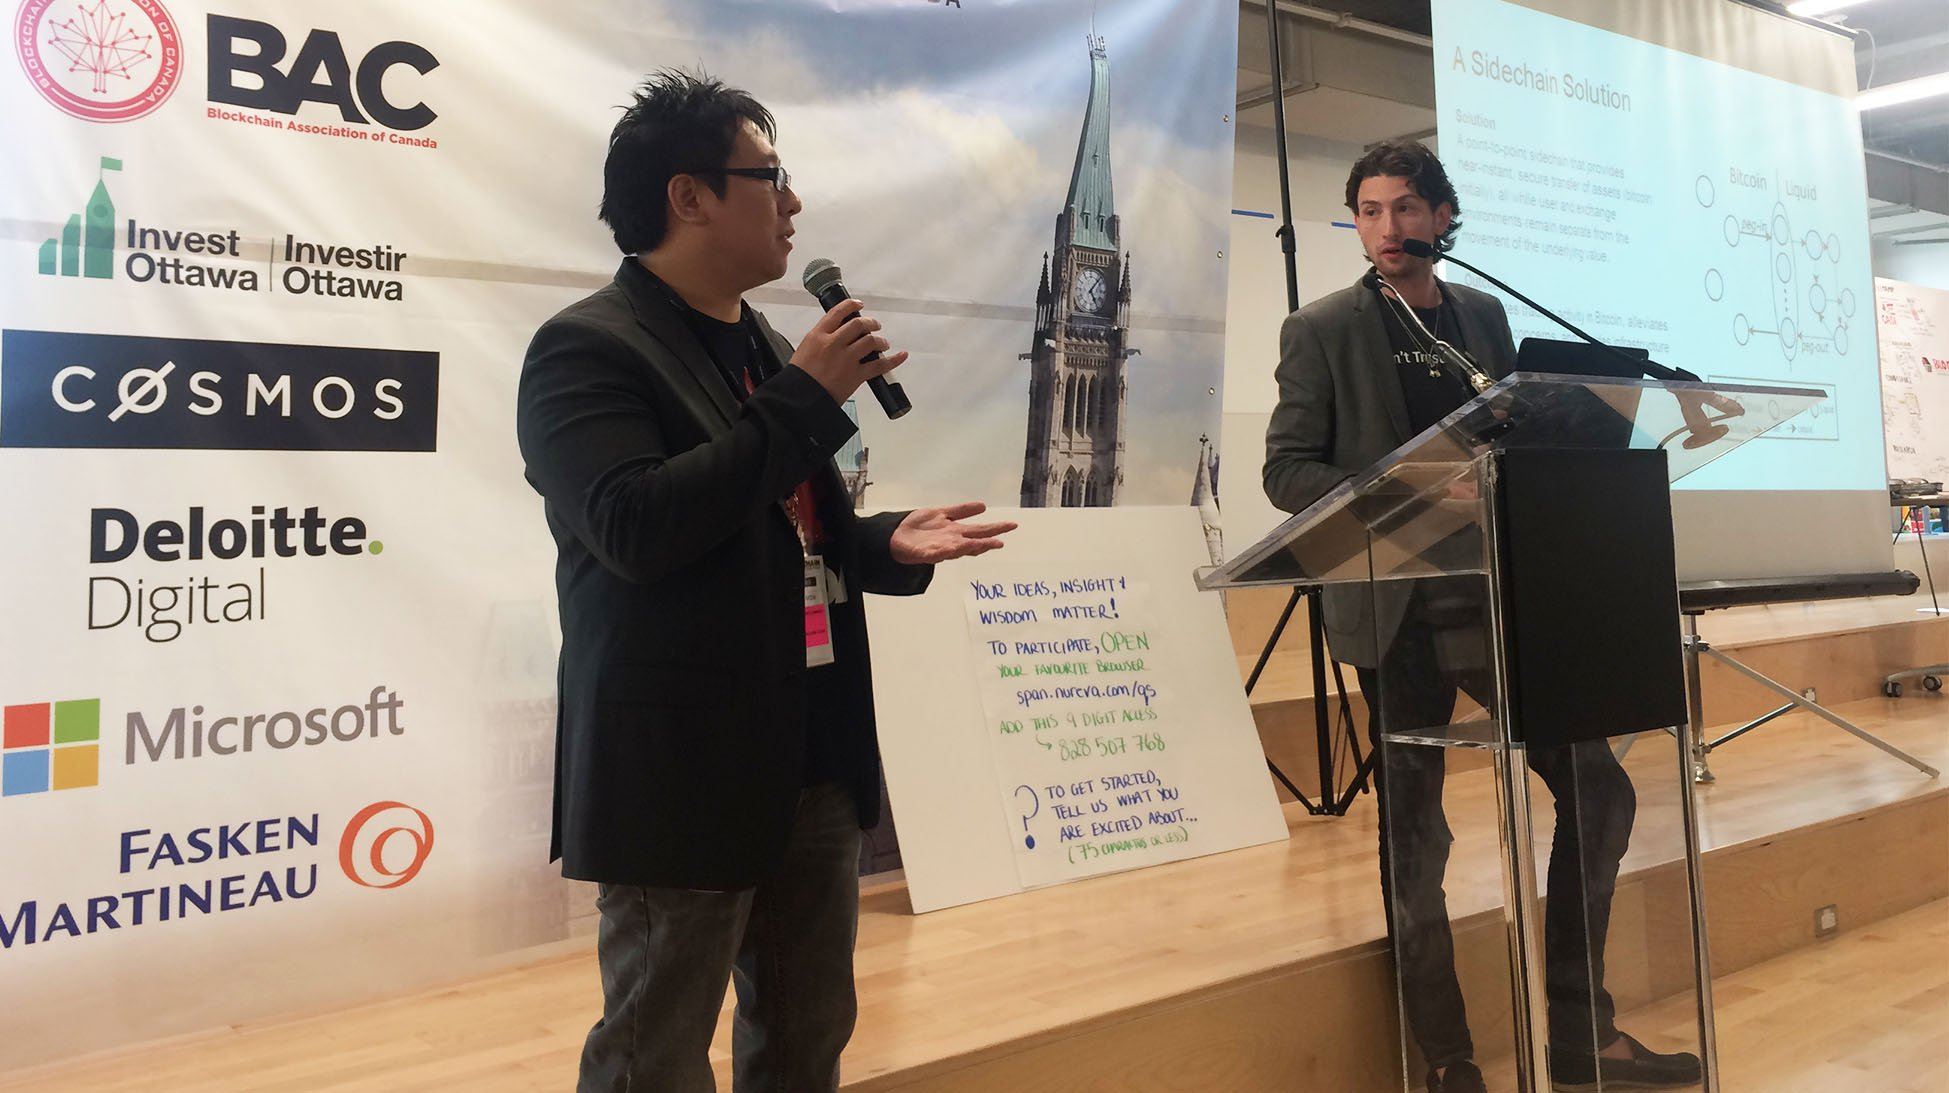 Samson Mow Introduces Liquid Networks at Blockchain Forum in Canada